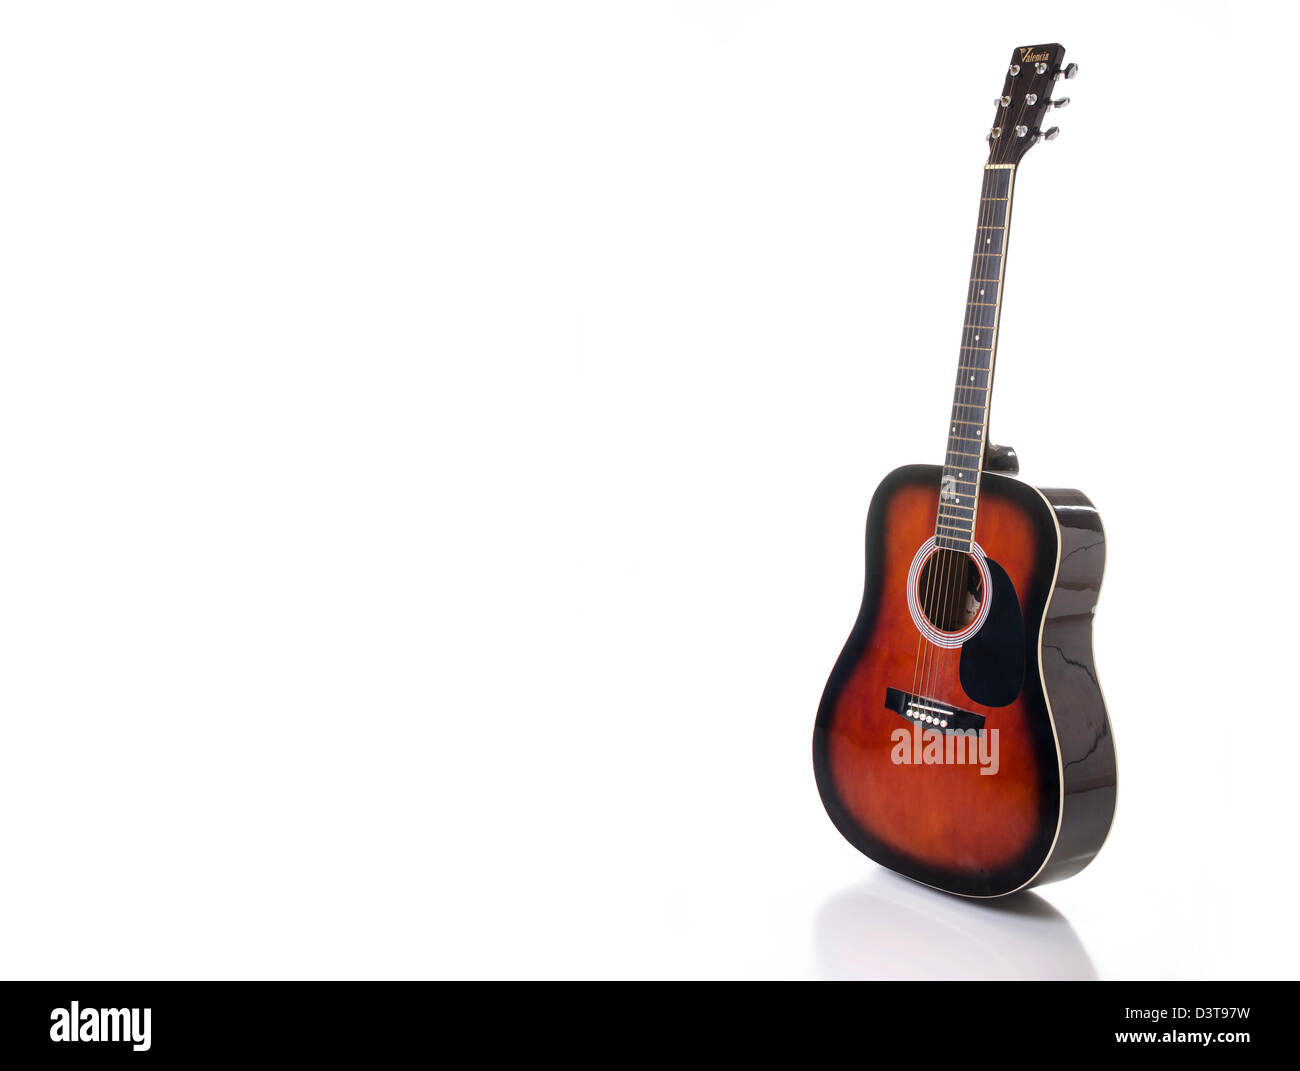 An acoustic guitar set against a white background, and reflecting in the surface below. - Stock Image